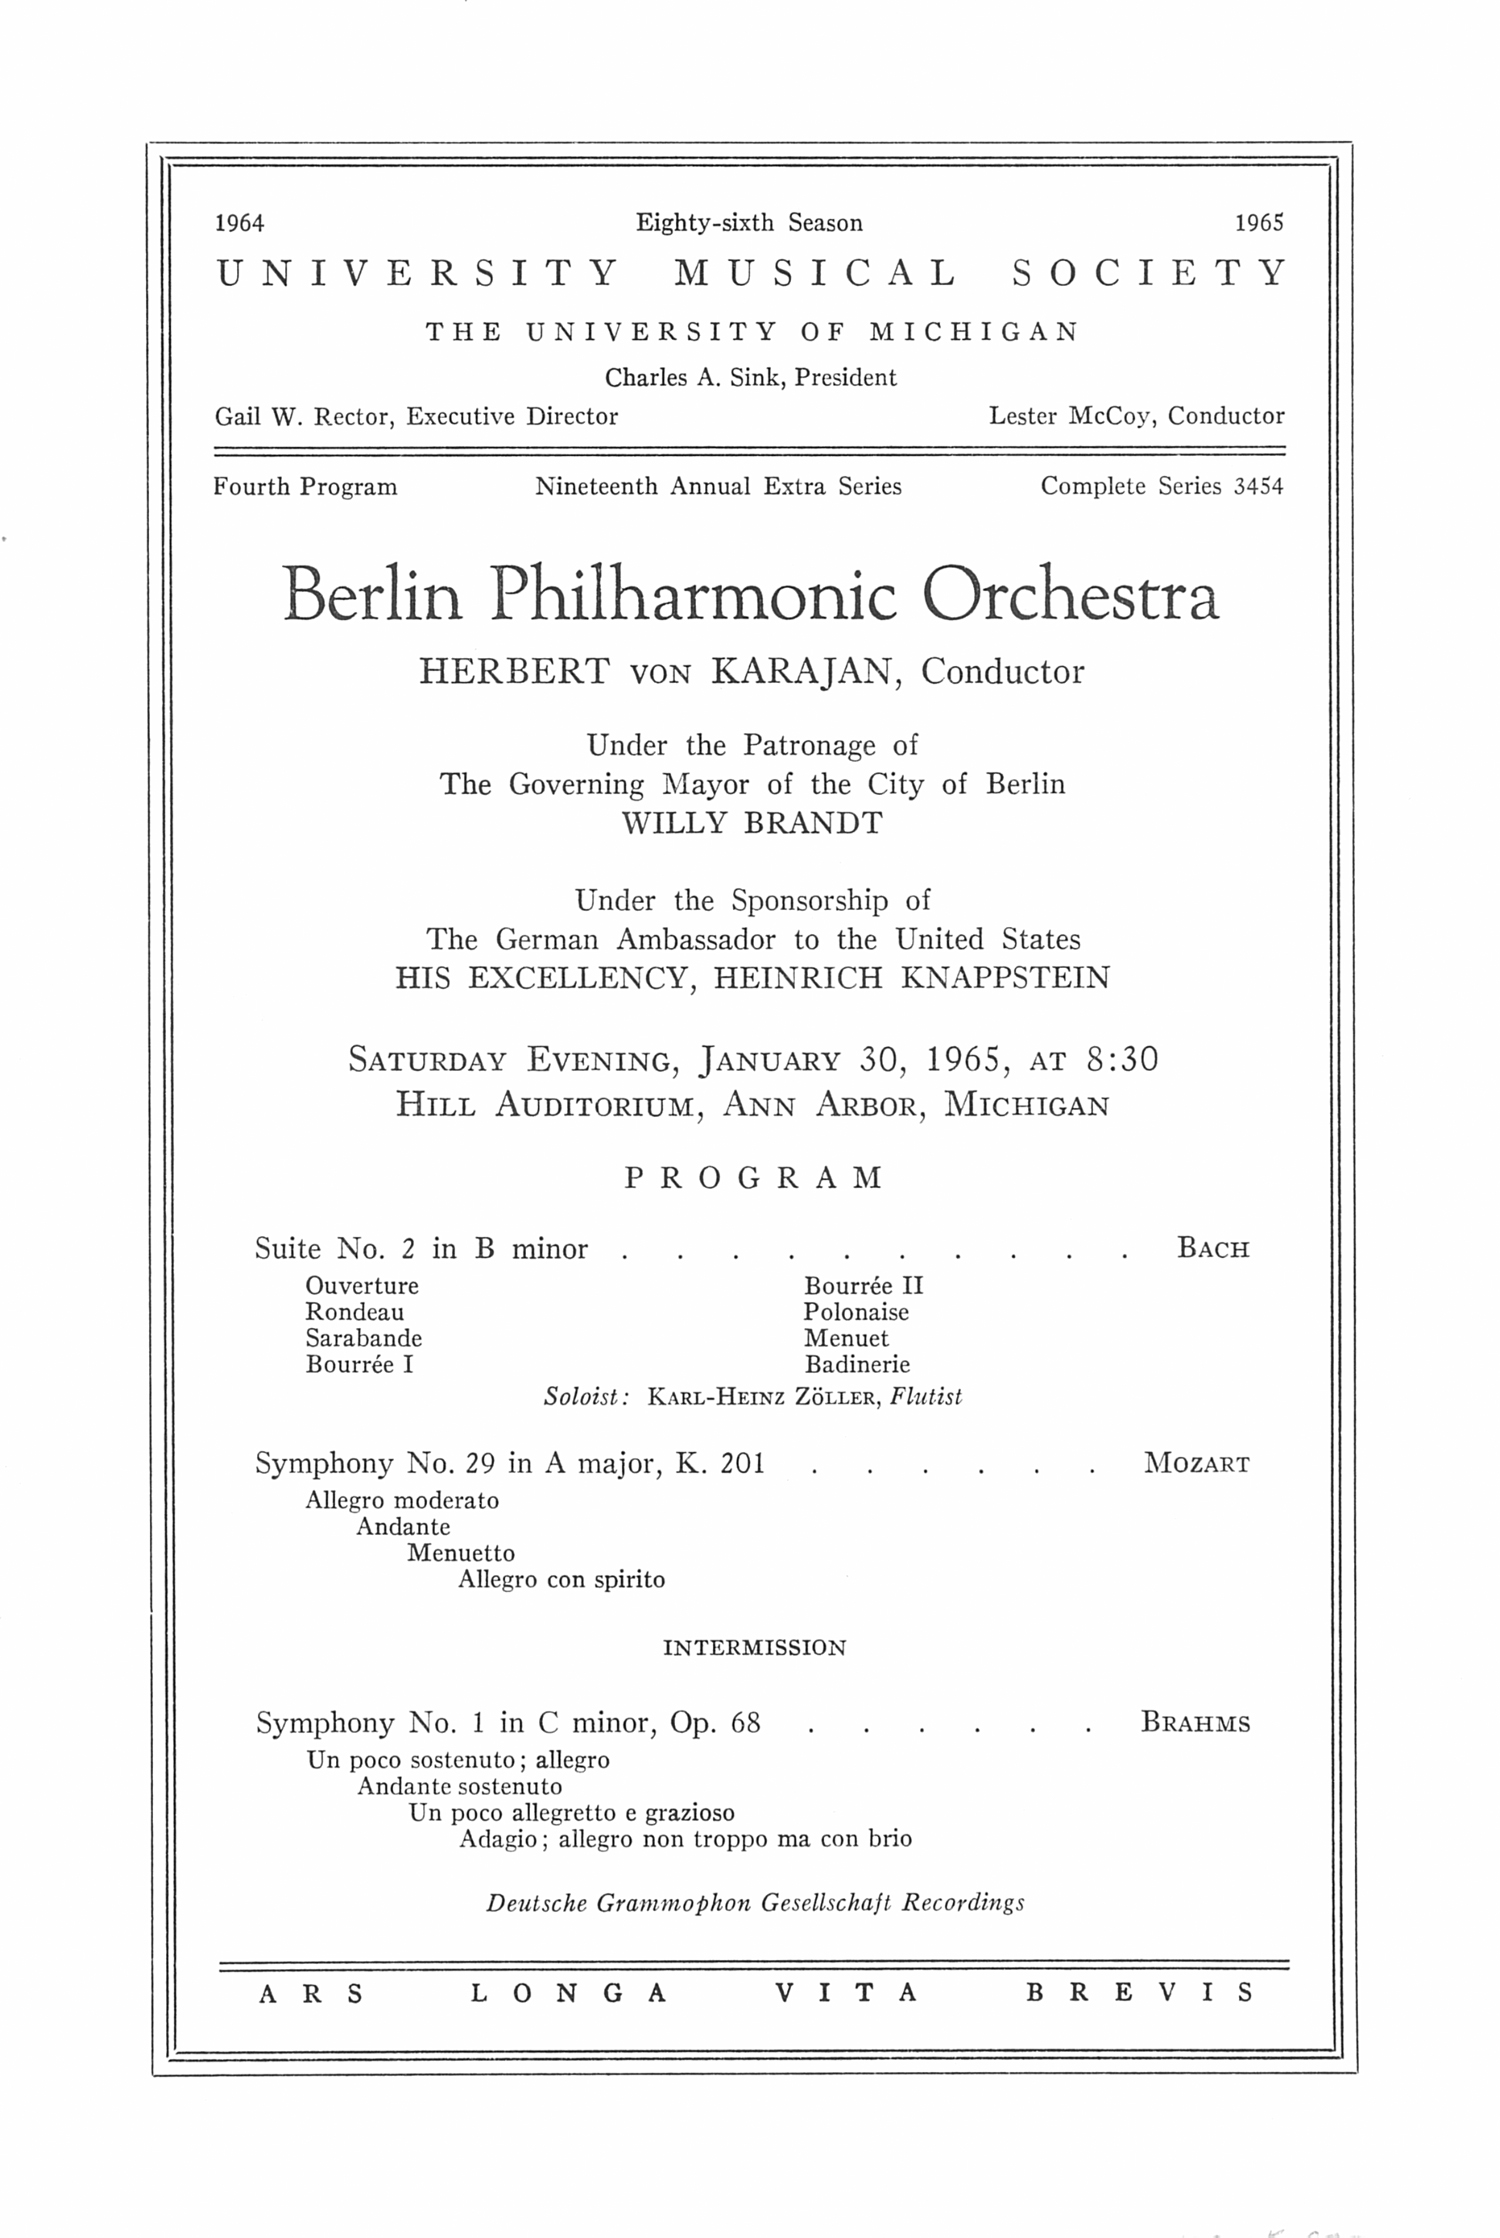 UMS Concert Program, January 30, 1965: Berlin Philharmonic Orchestra --  image